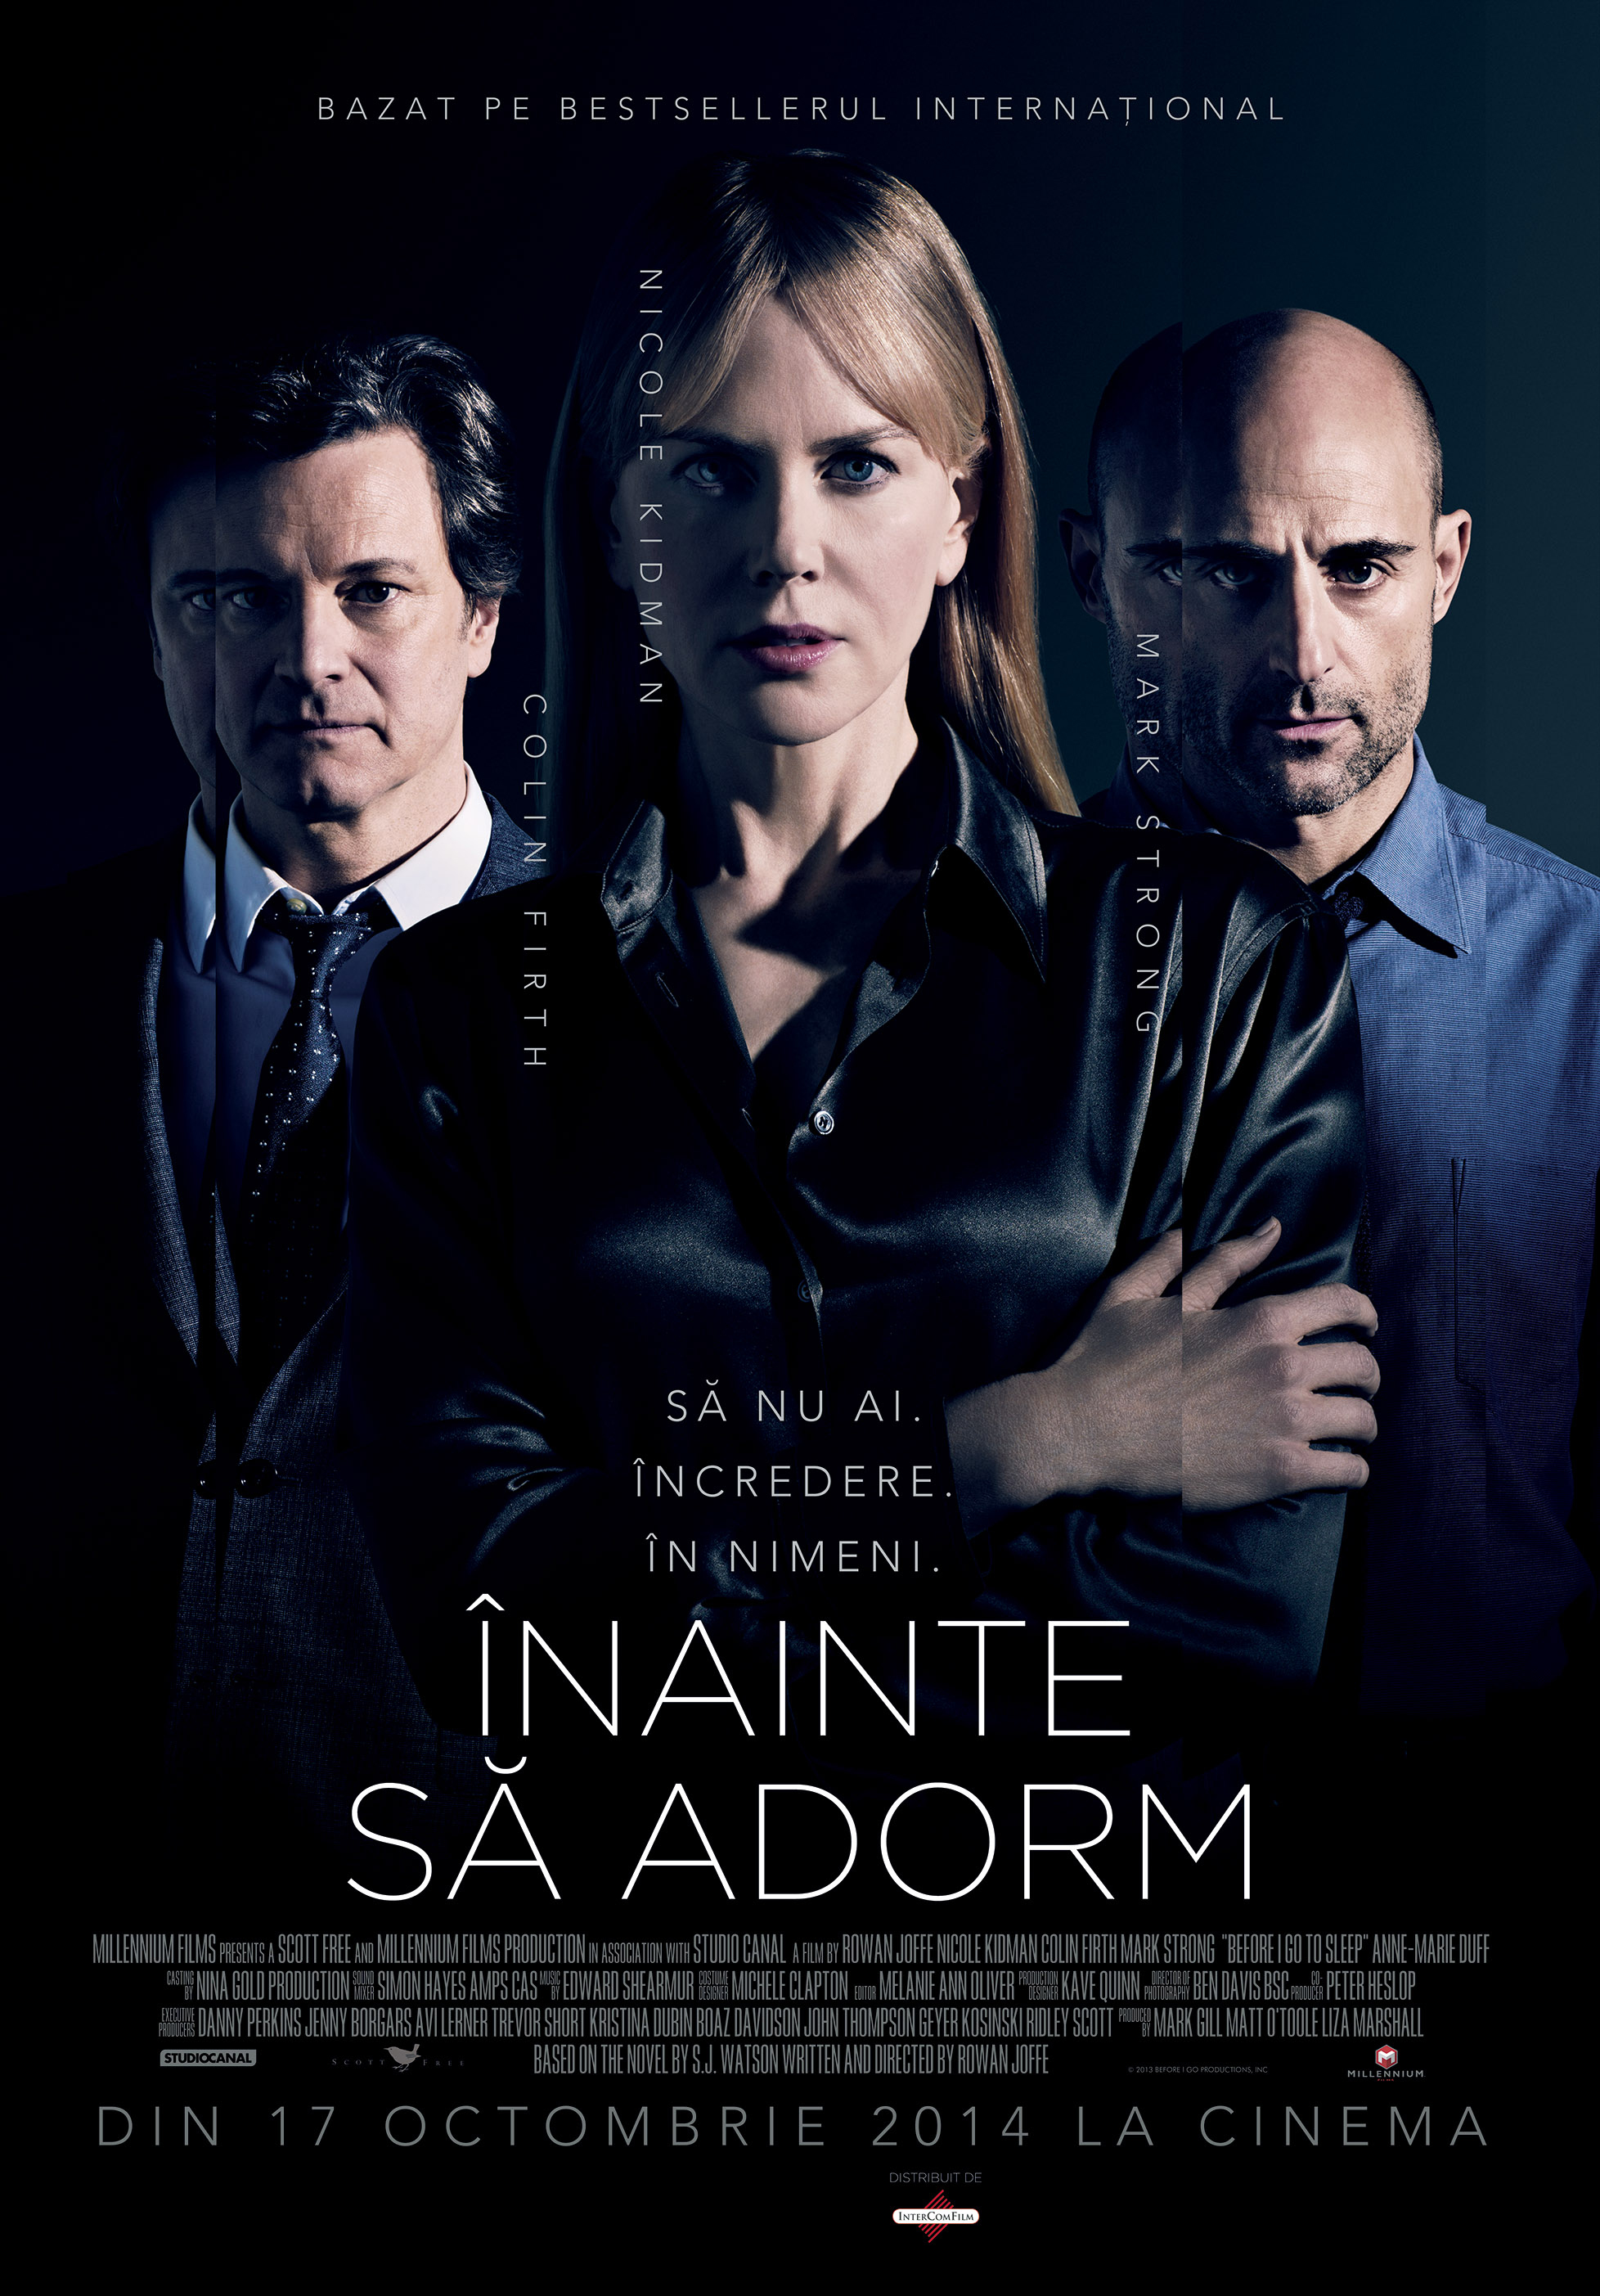 BEFORE I GO TO SLEEP – INAINTE SA ADORM (2014)